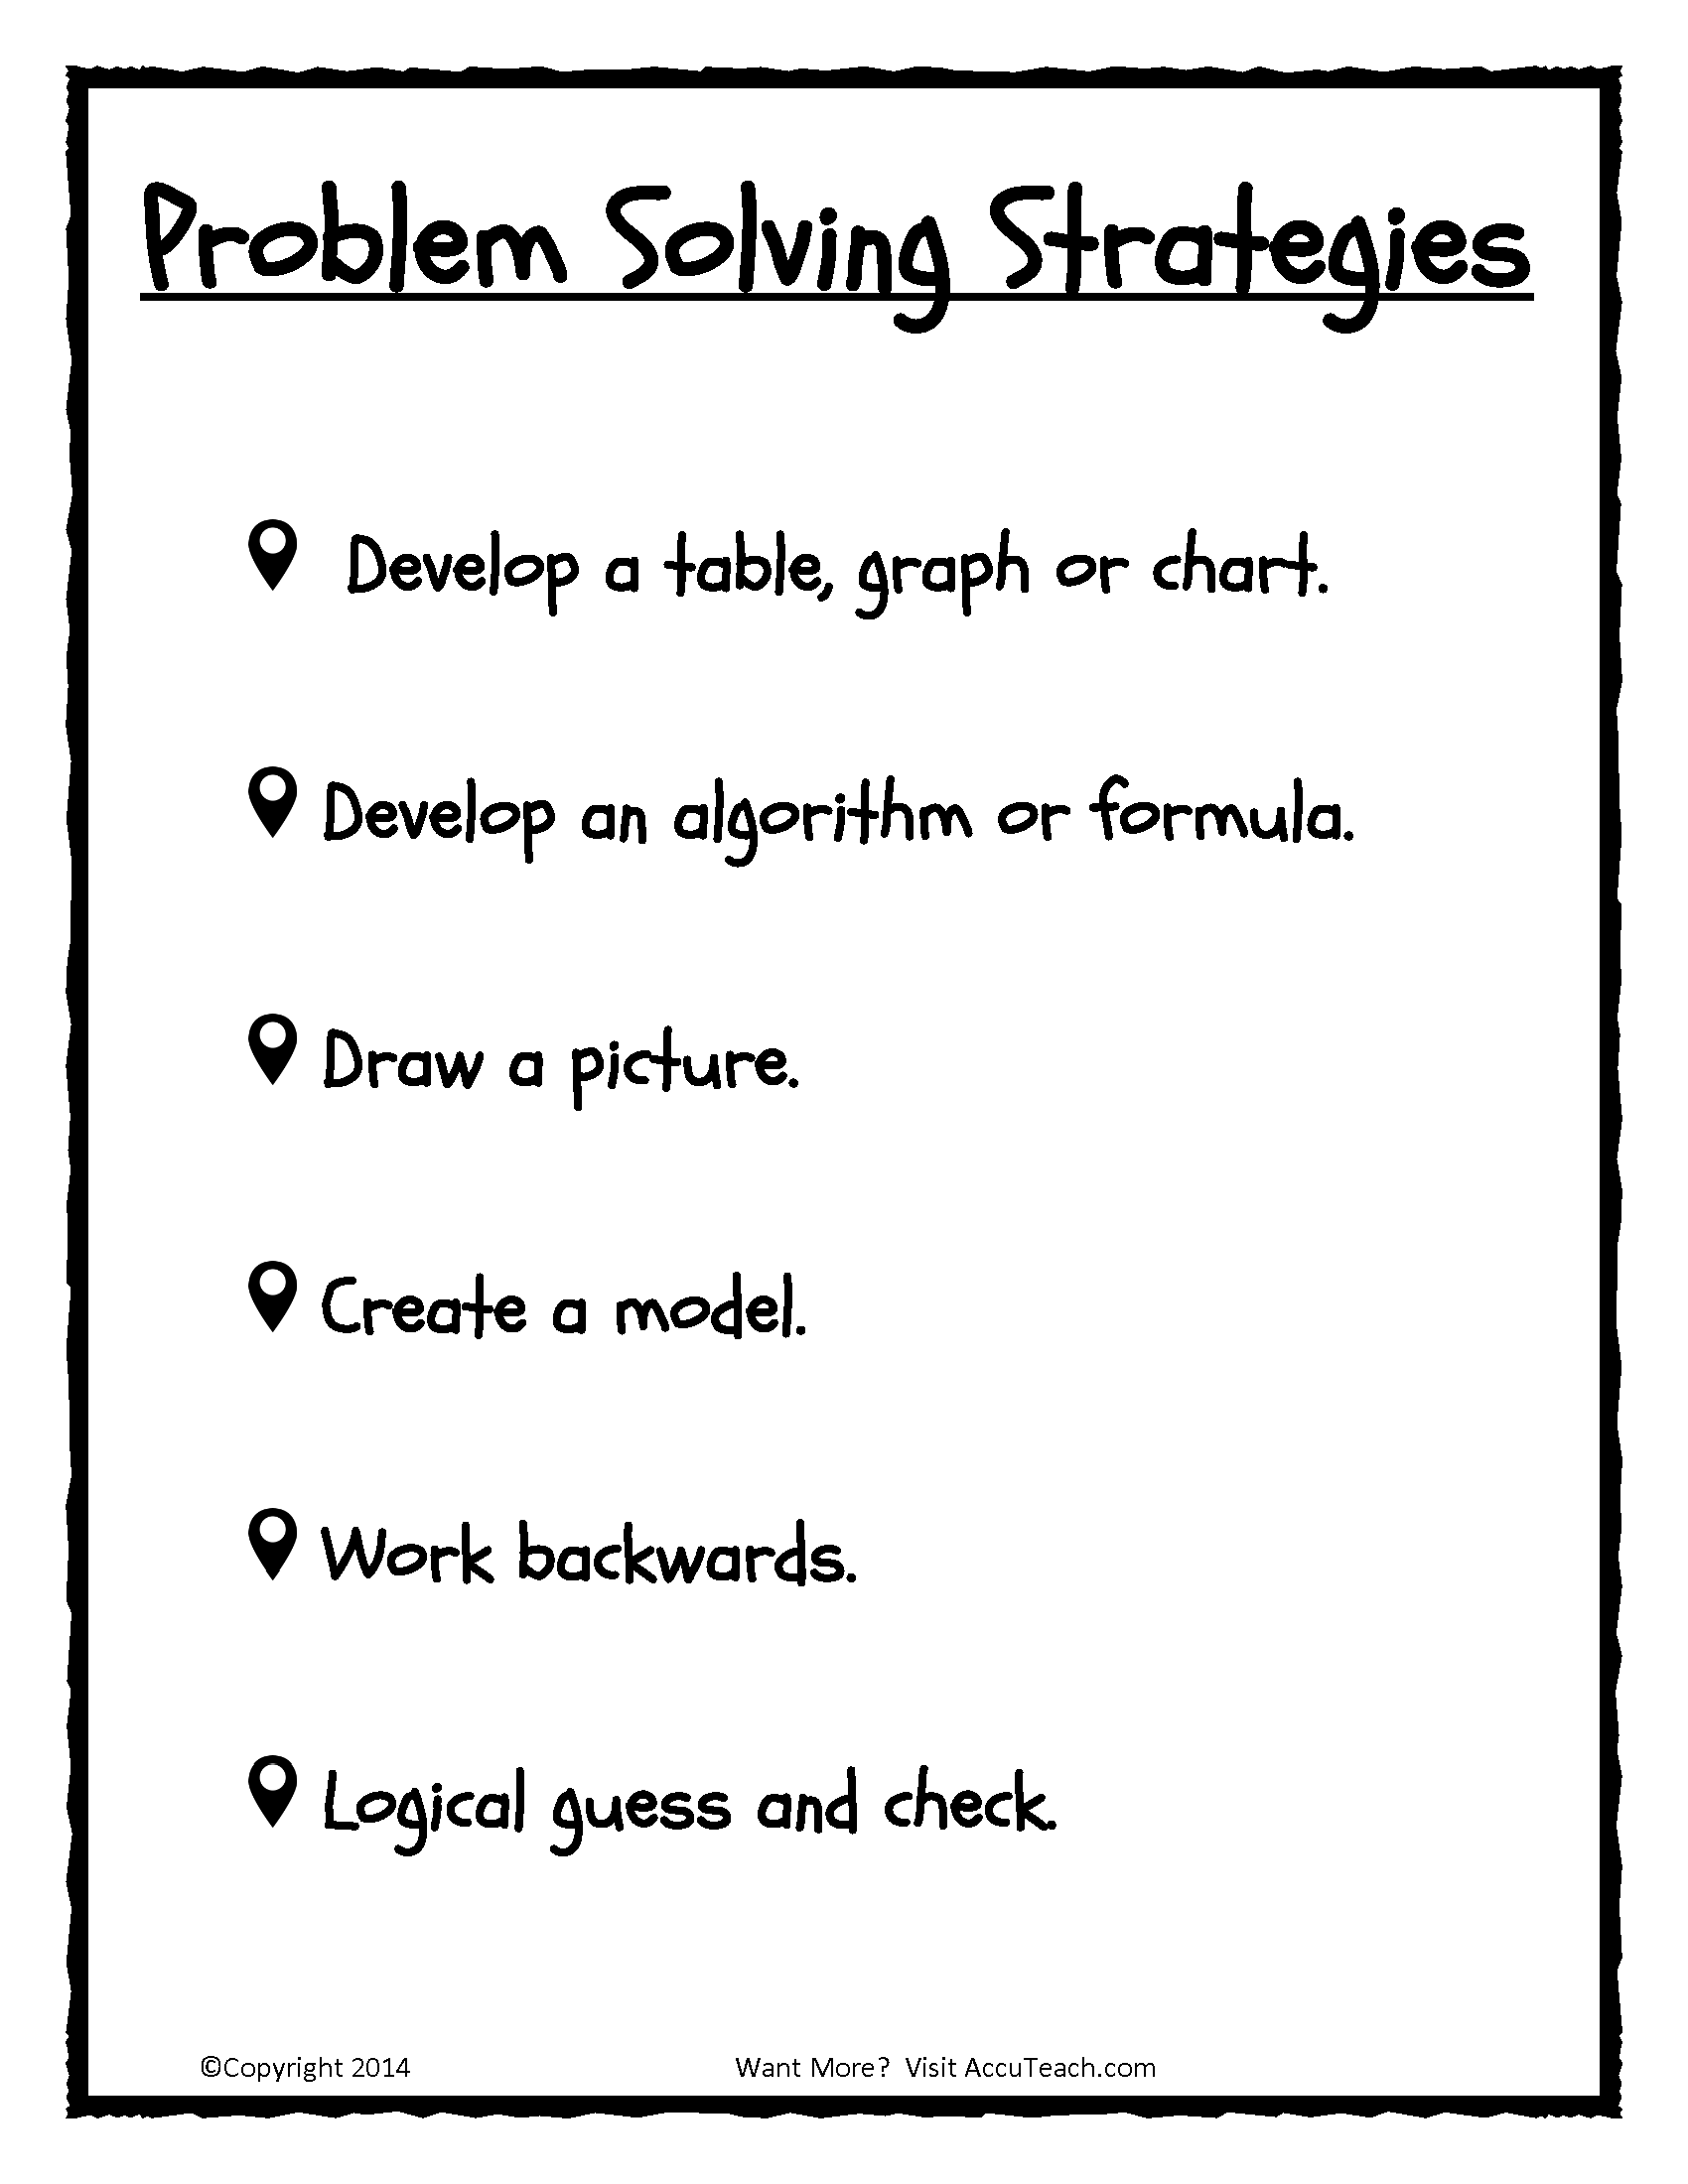 Problem Solving Strategies Math Math Problem Solving